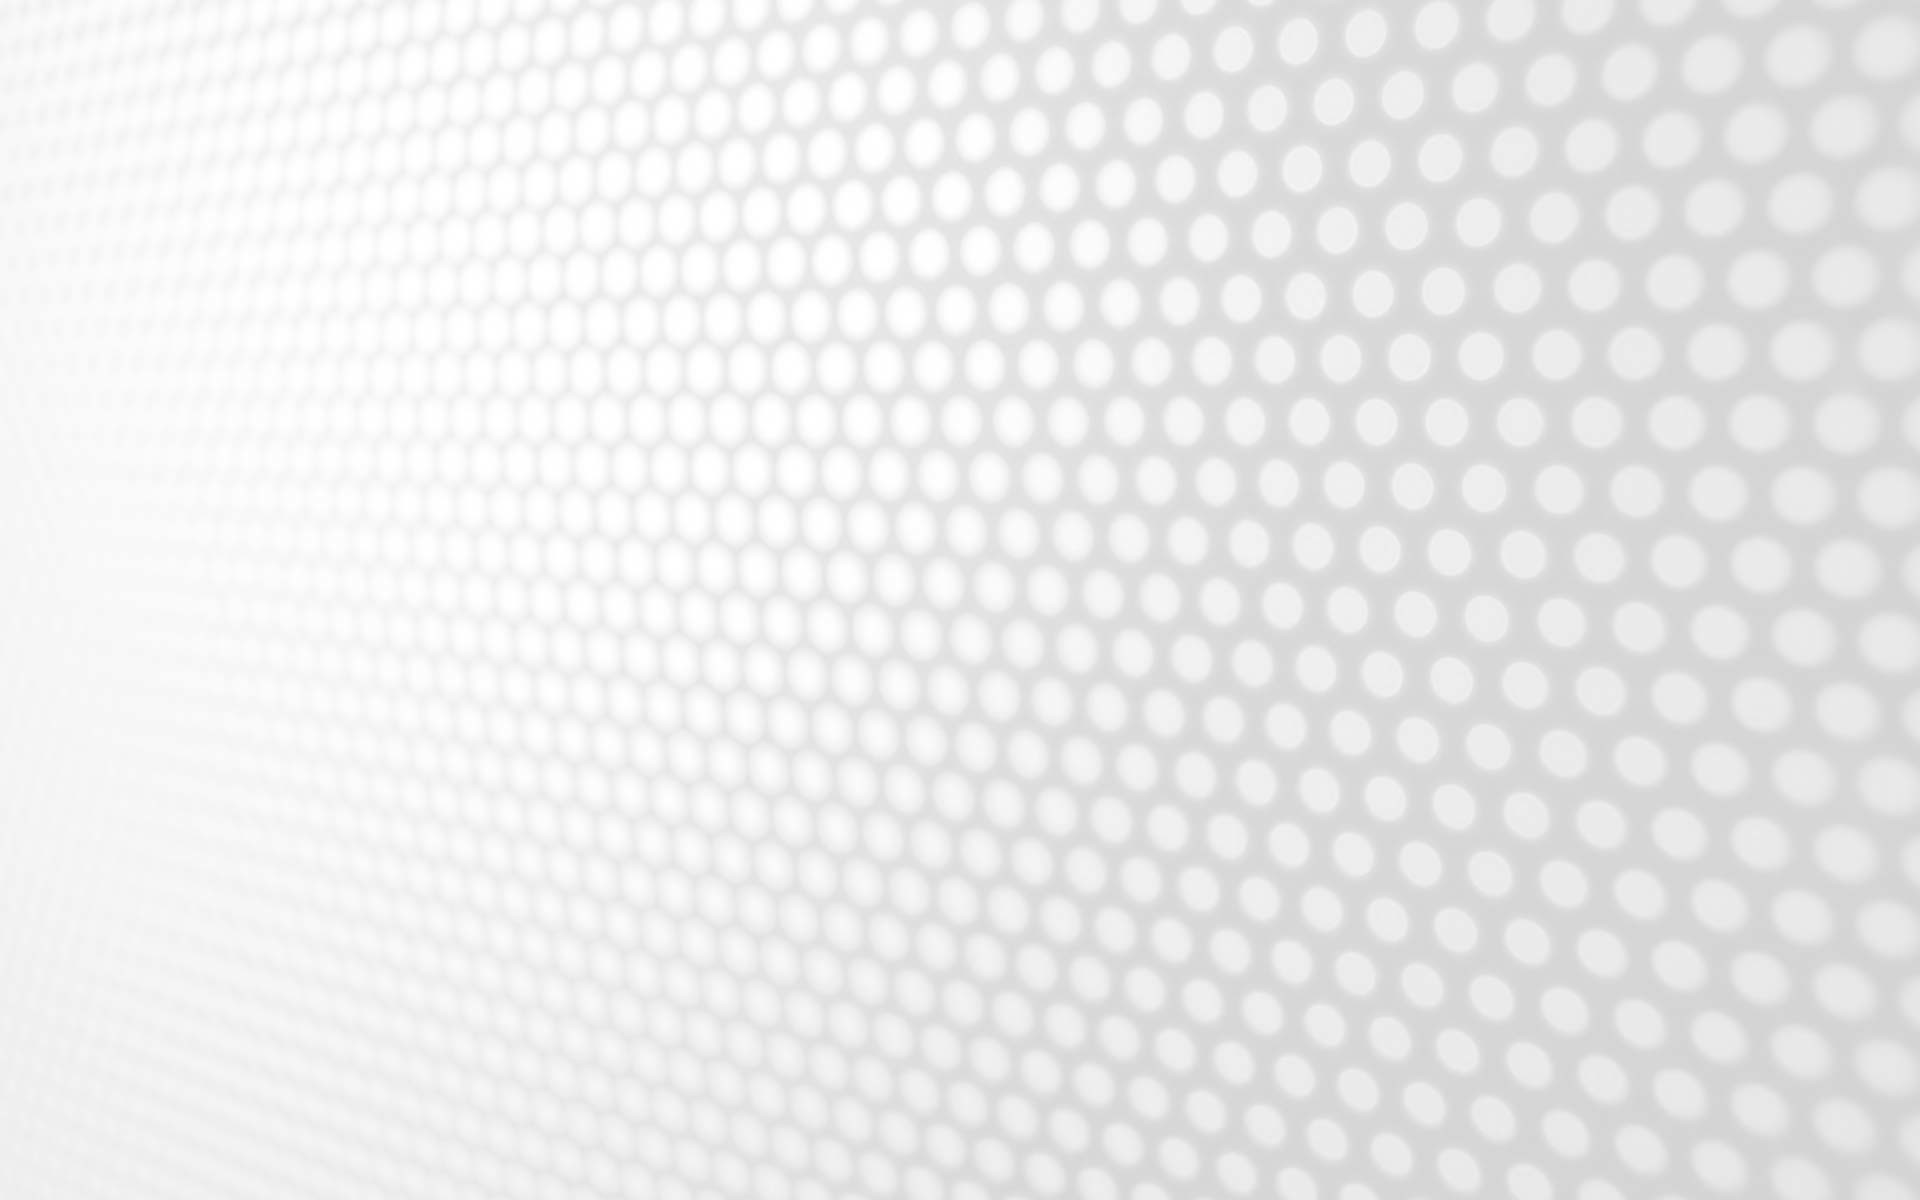 Grey Backgrounds Marketing Wallpaper 63 images 1920x1200